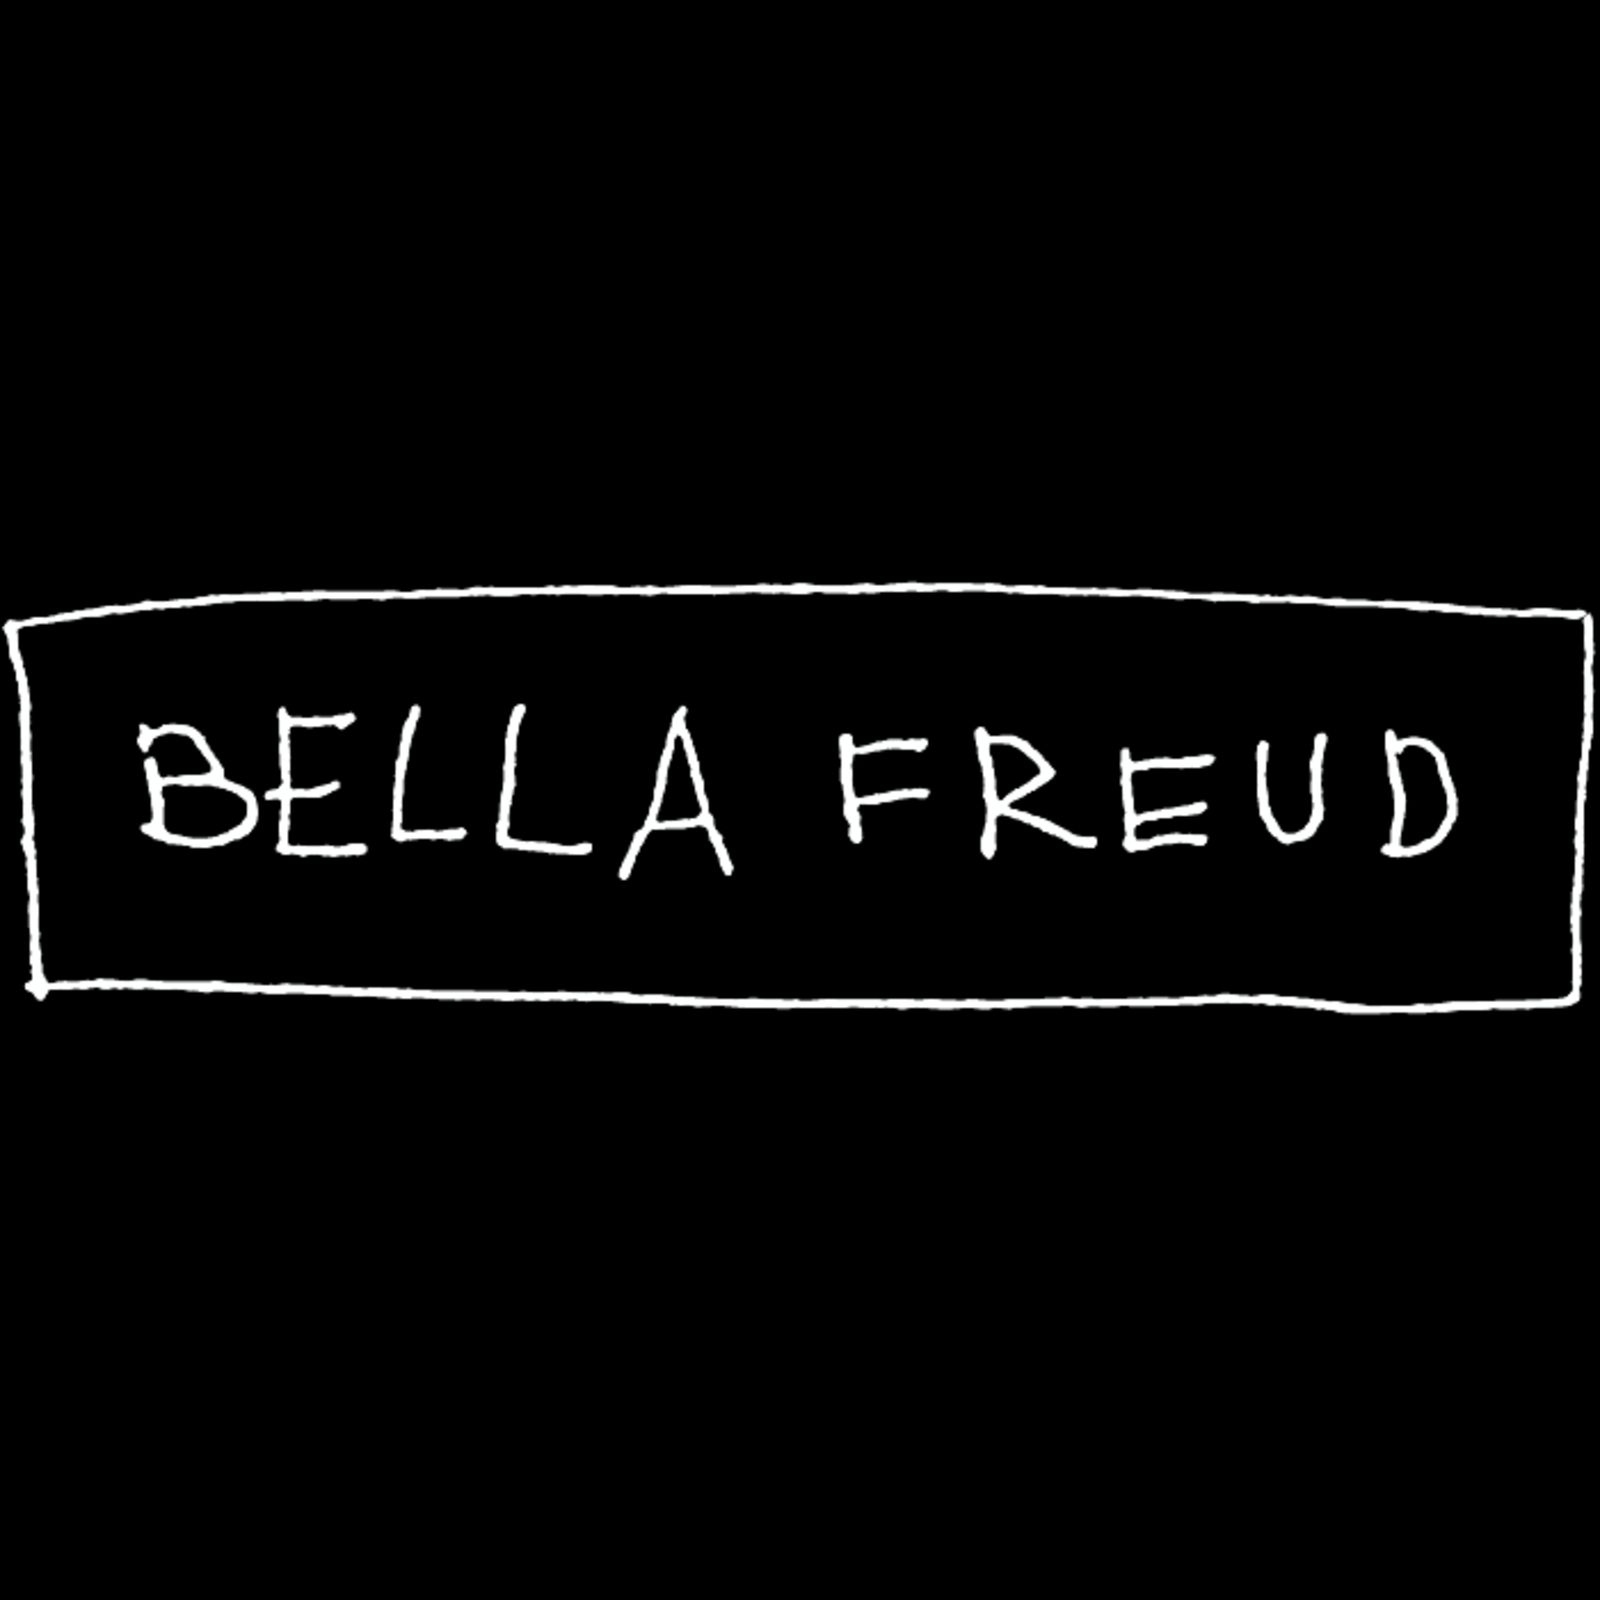 BELLA FREUD